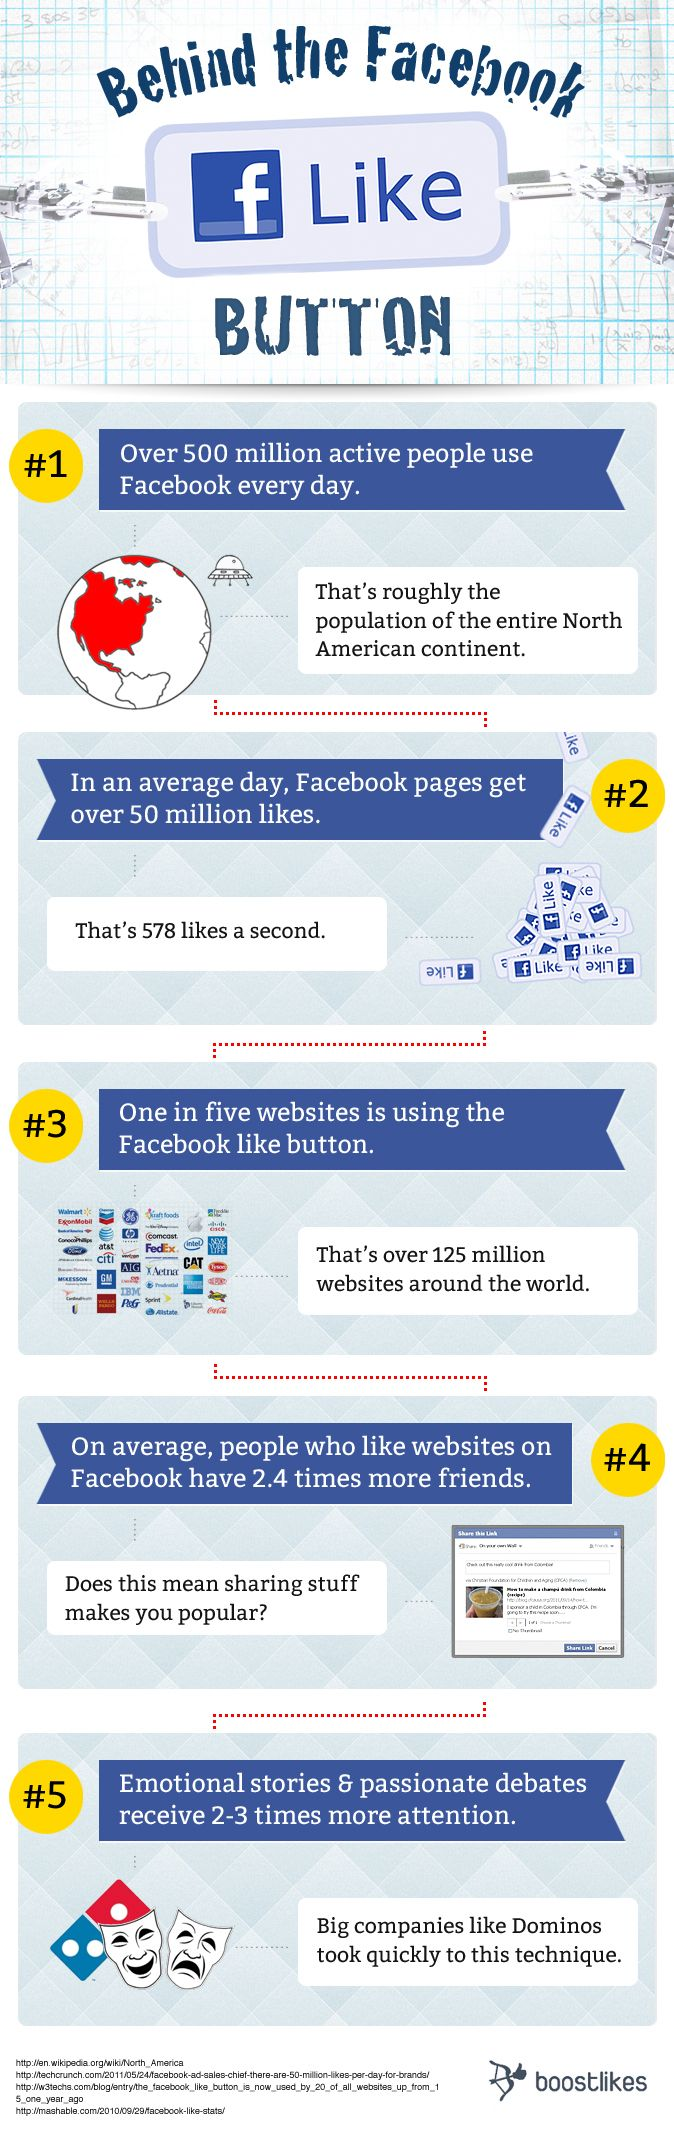 Behind the #Facebook Like - #infographic                    ----------------------------------------------------------  Let's Engage more on Twitter: @navidooo  |    Let's Connect on LinkedIn: au.linkedin.com/in/navidsaadati